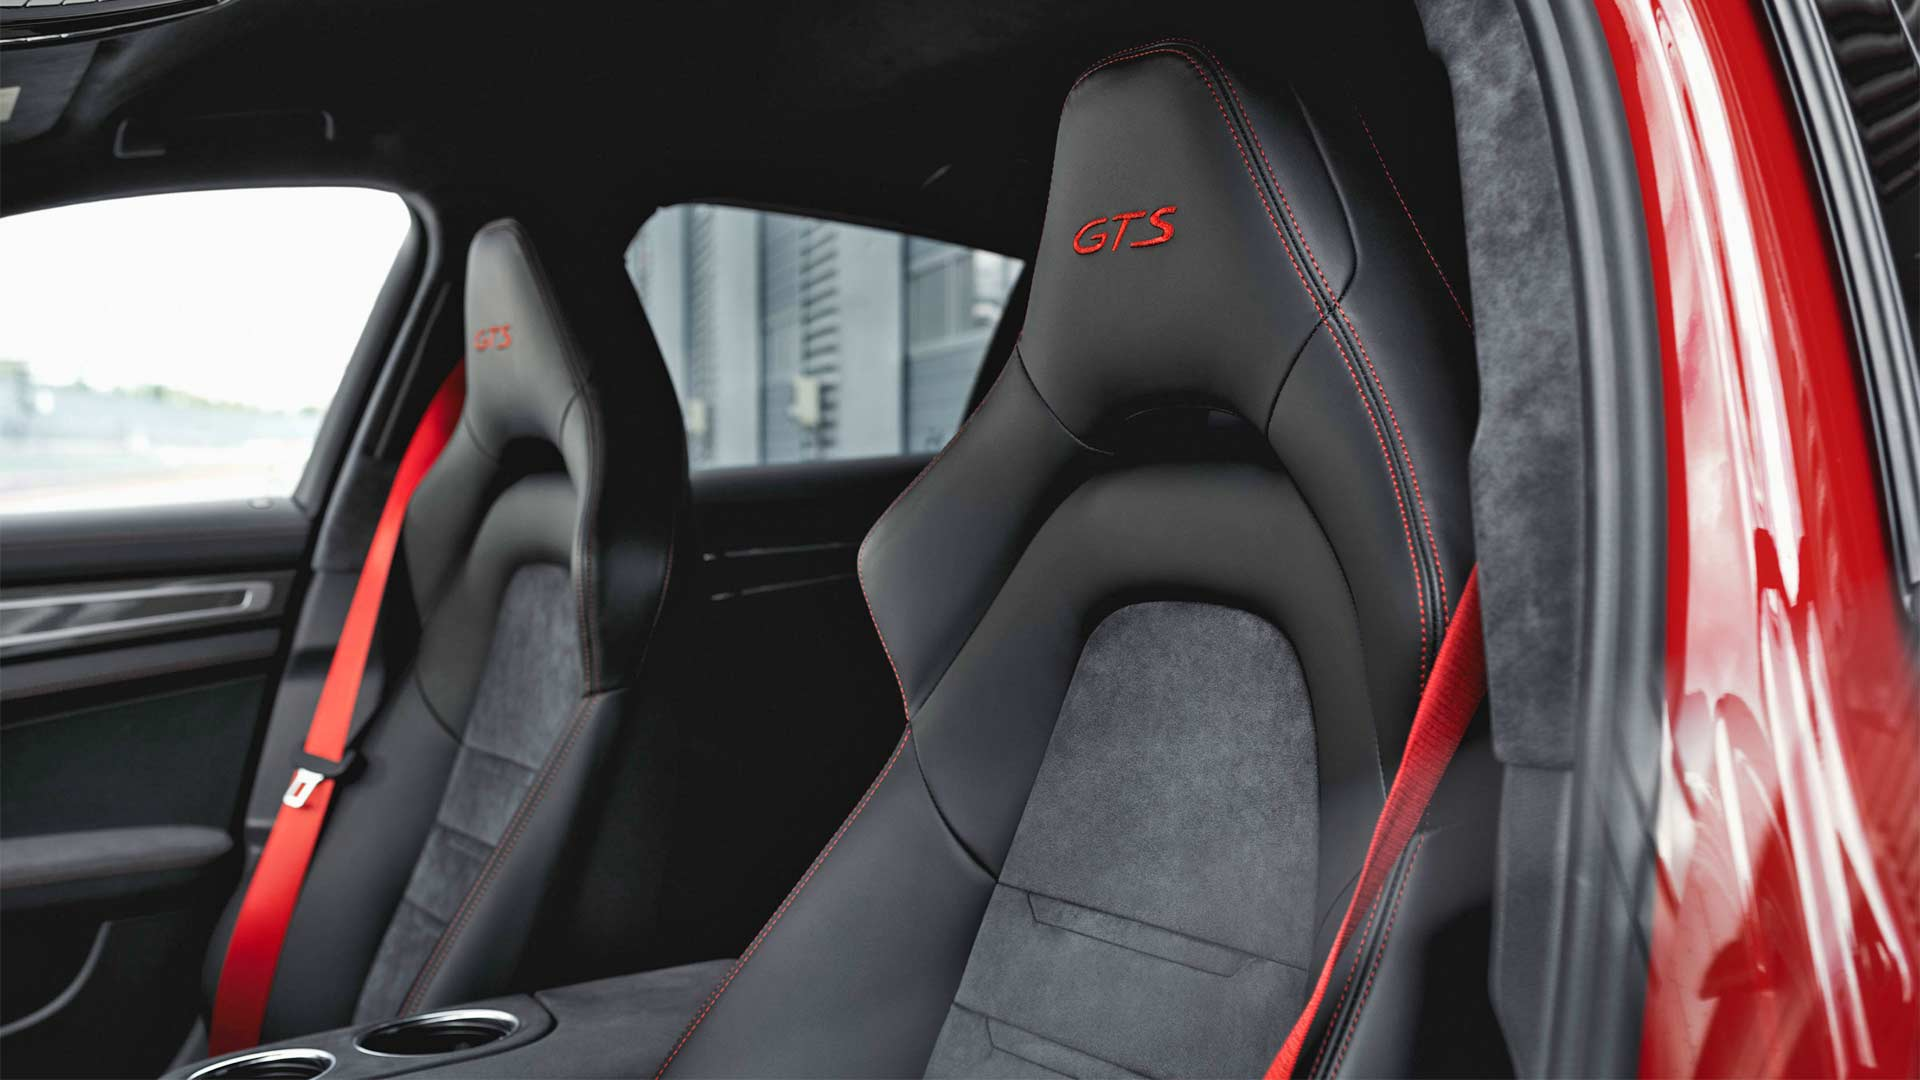 2018-2nd-generation-Porsche-Panamera-GTS-Interior_2